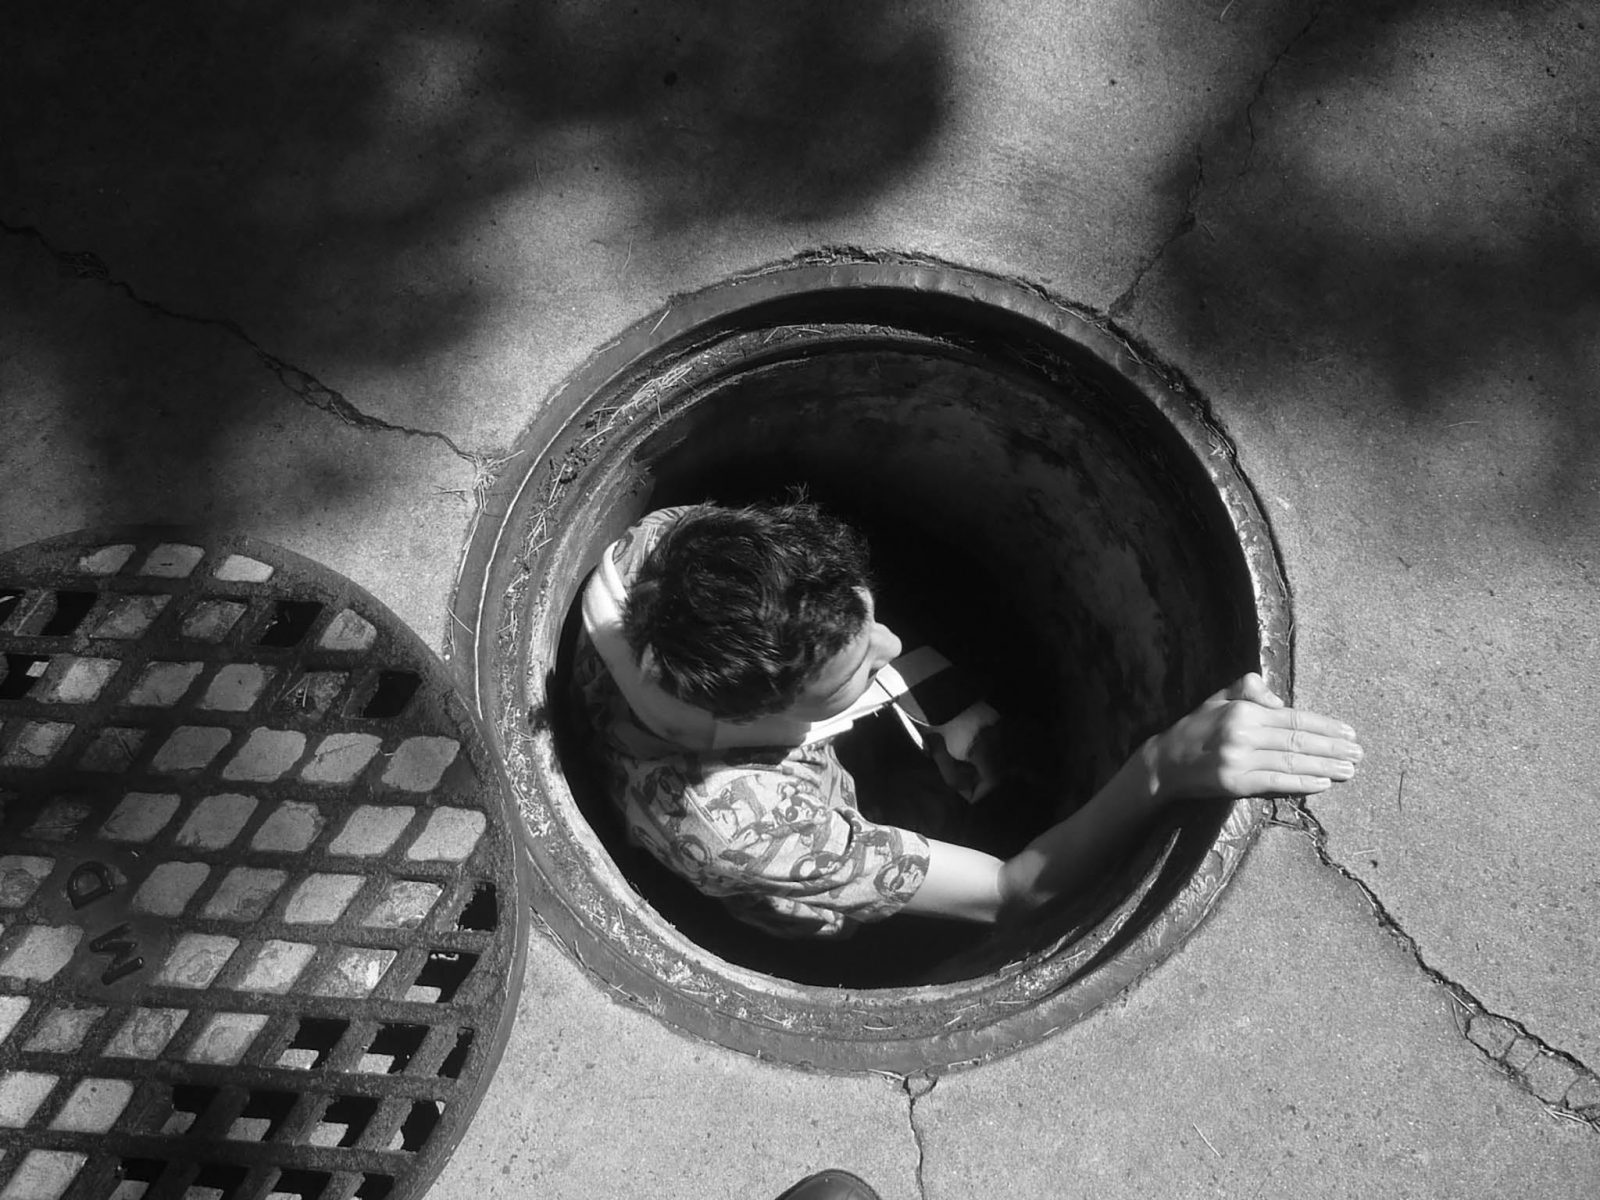 Person emerging out of a drain